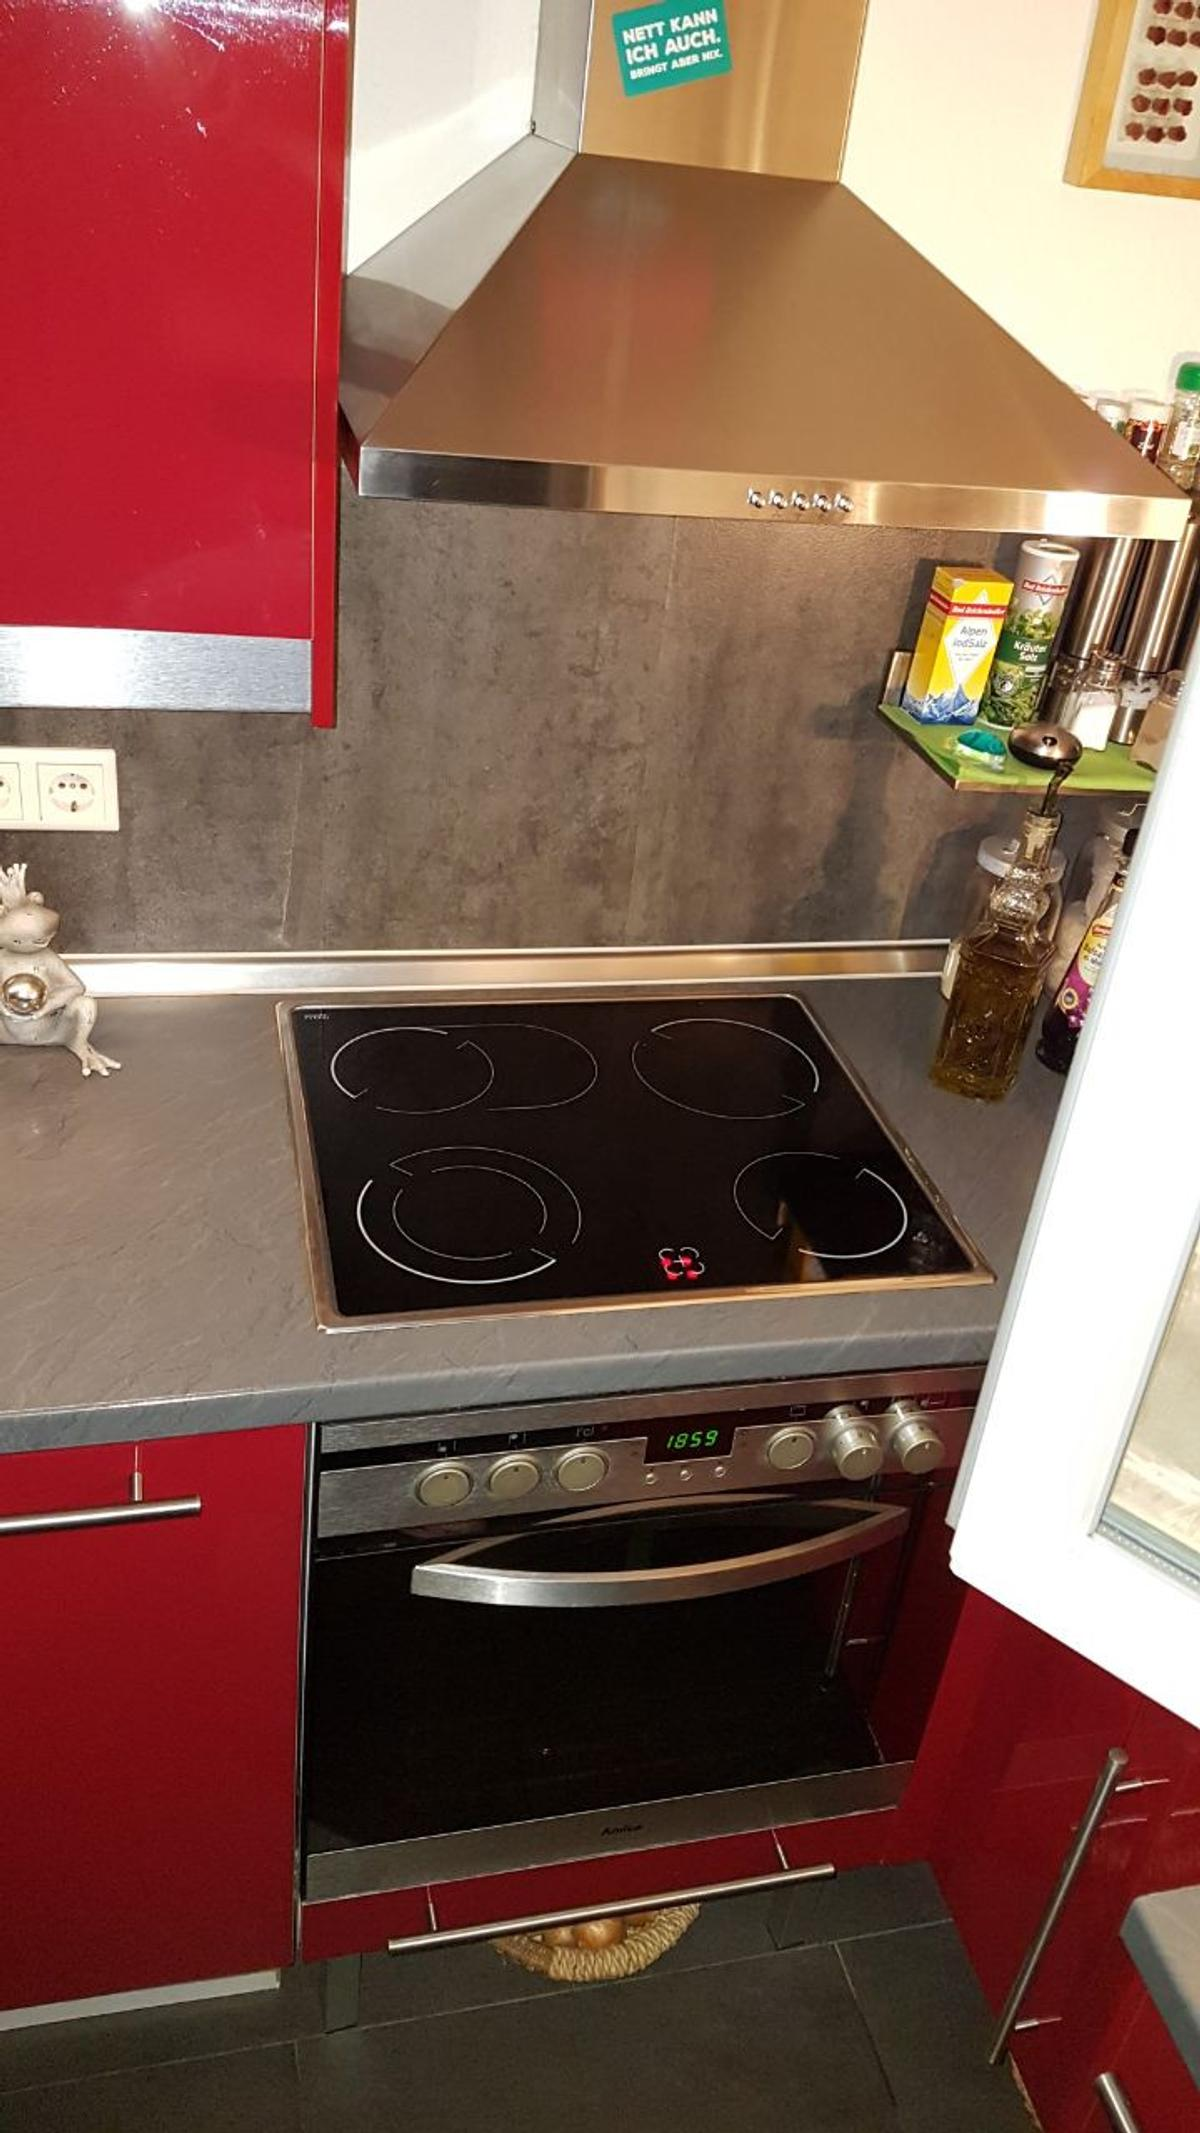 Ikea Kuche Hochglanz Rot In 42279 Wuppertal For 1 150 00 For Sale